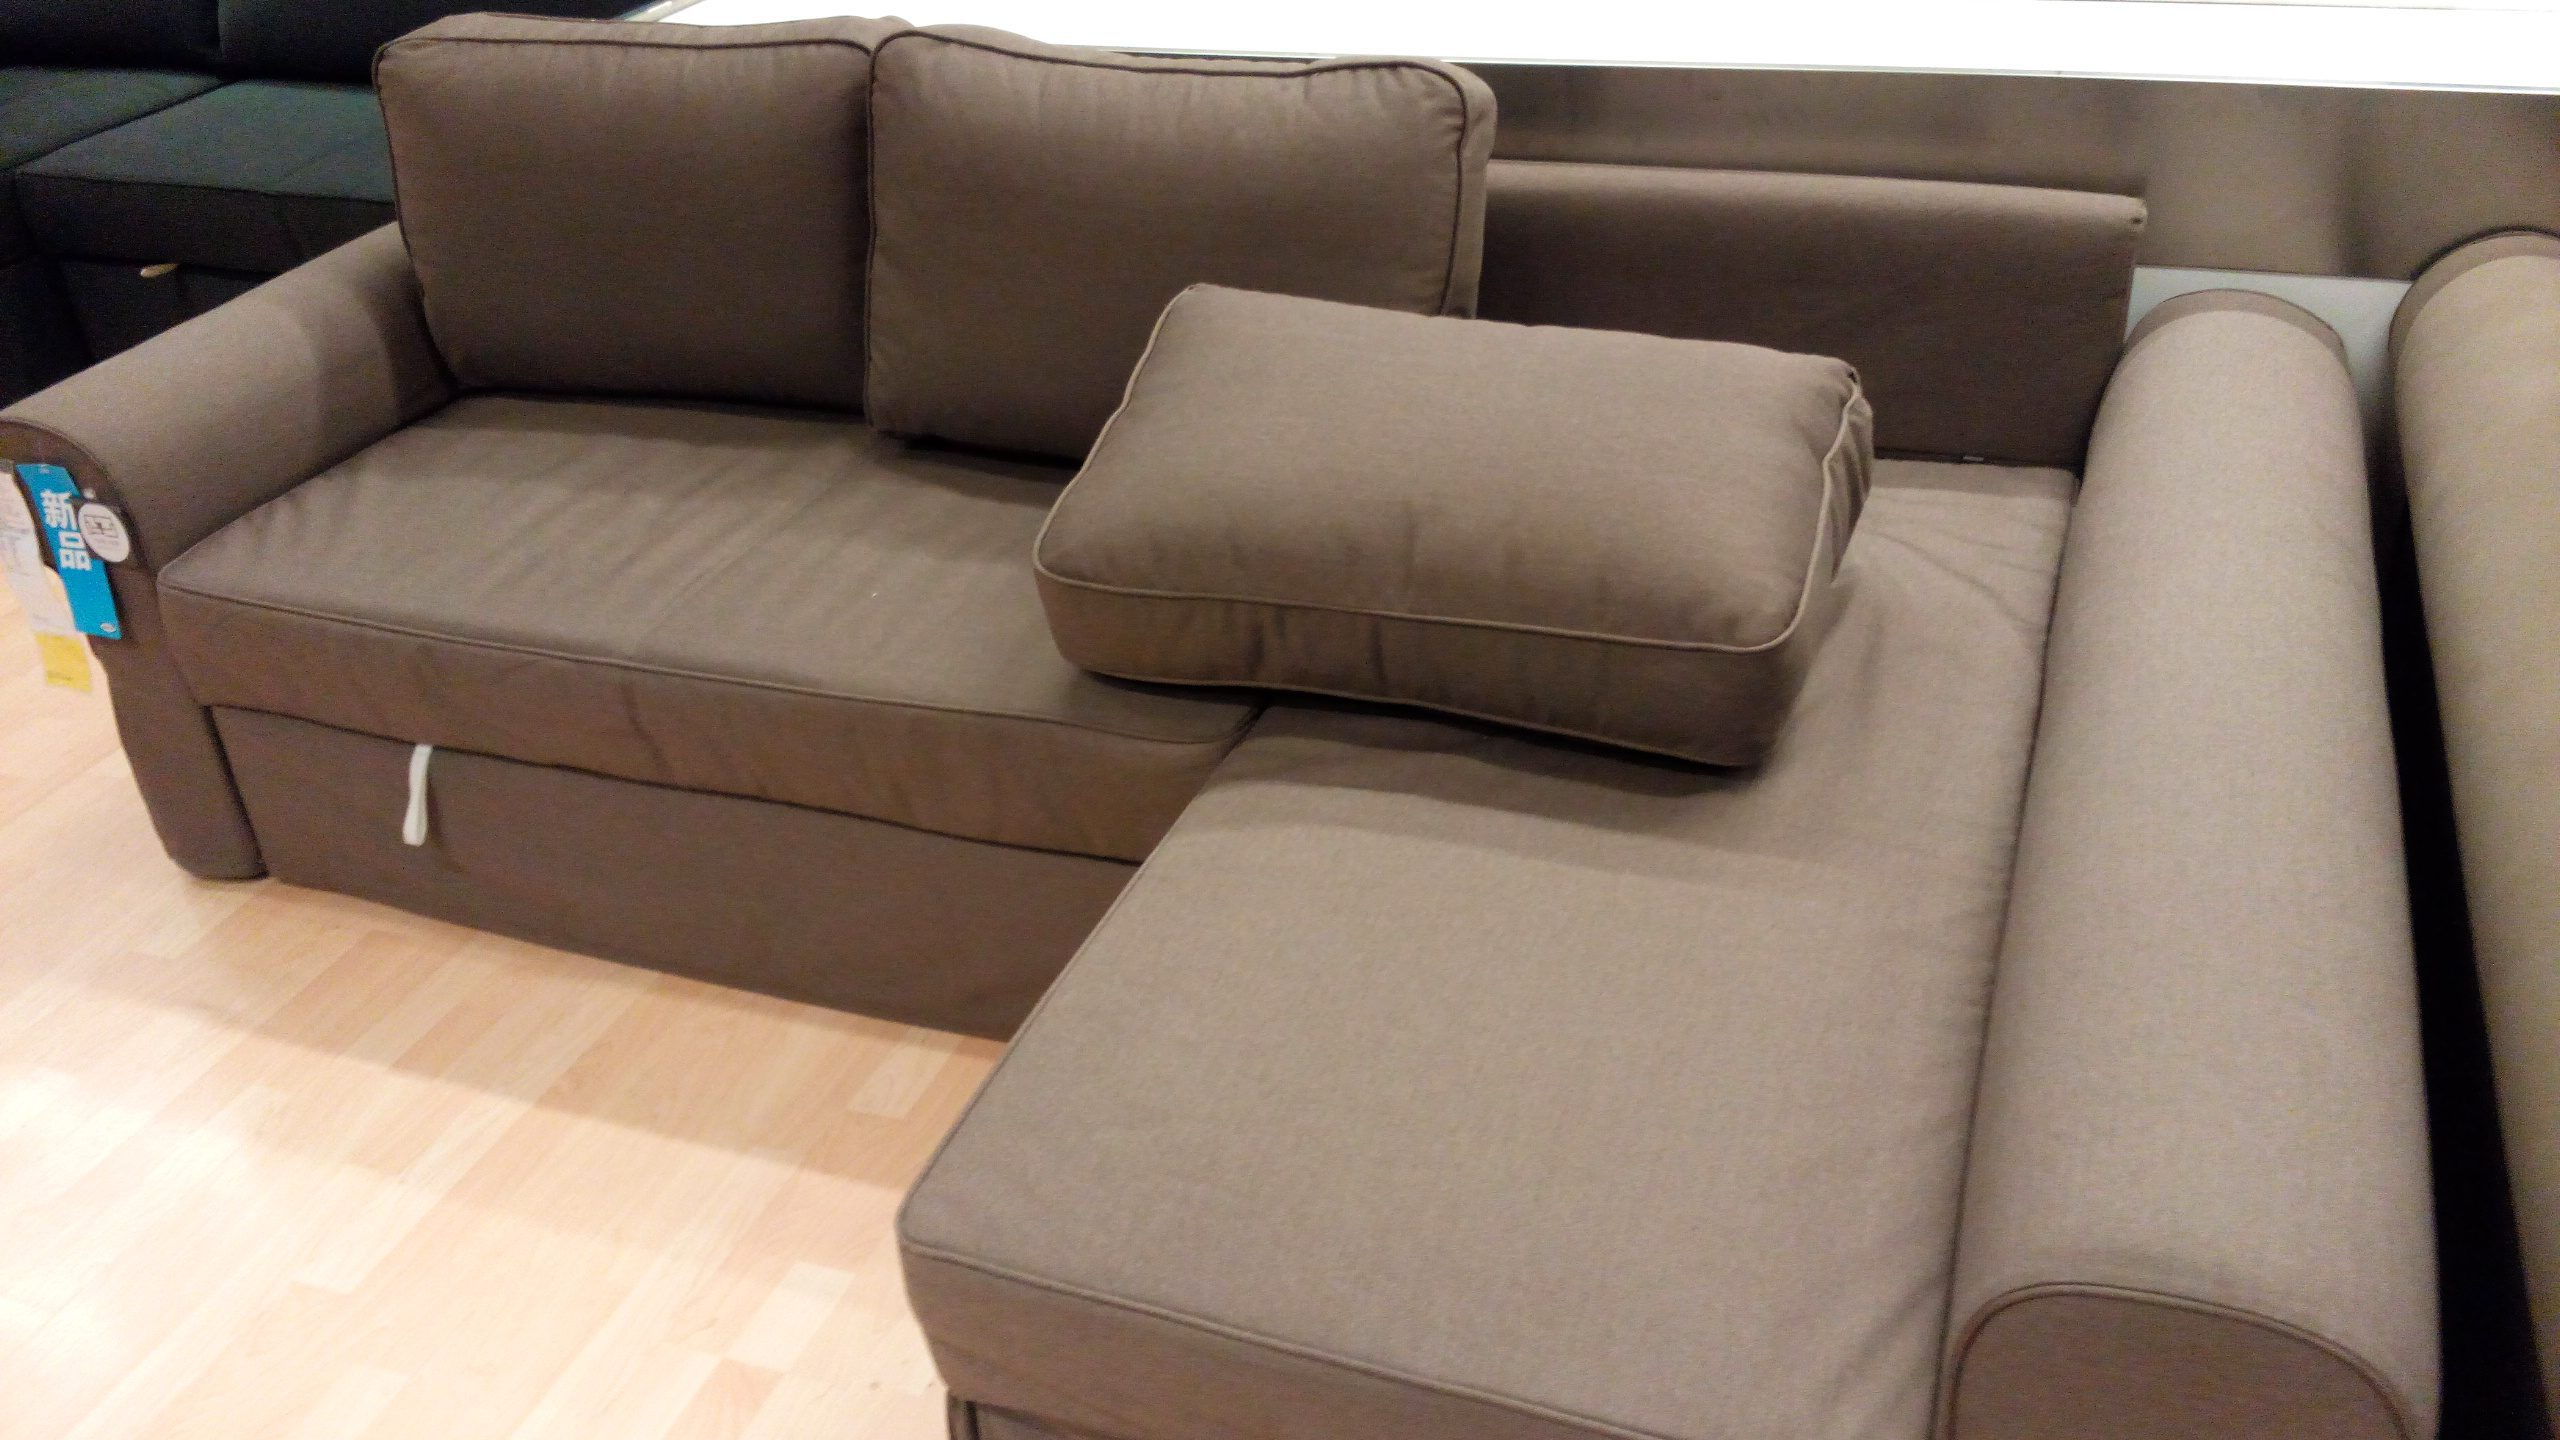 Backabro Ecksofa Ikea Vilasund And Backabro Review Return Of The Sofa Bed Clones